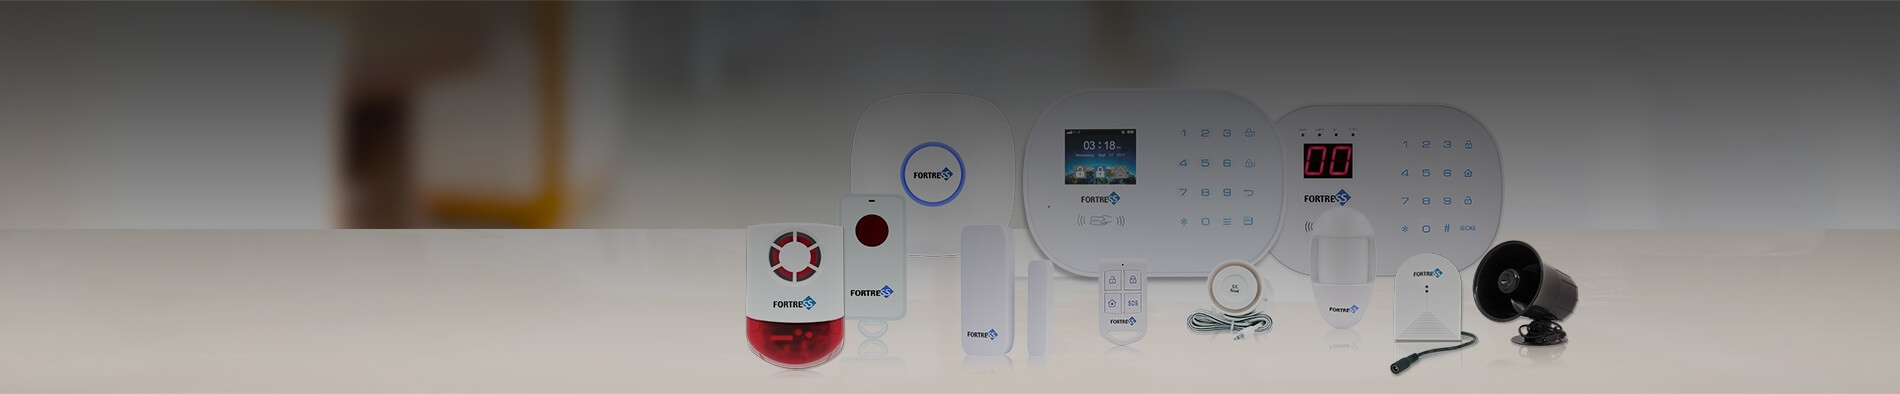 S03 3G/4G WiFi Security System